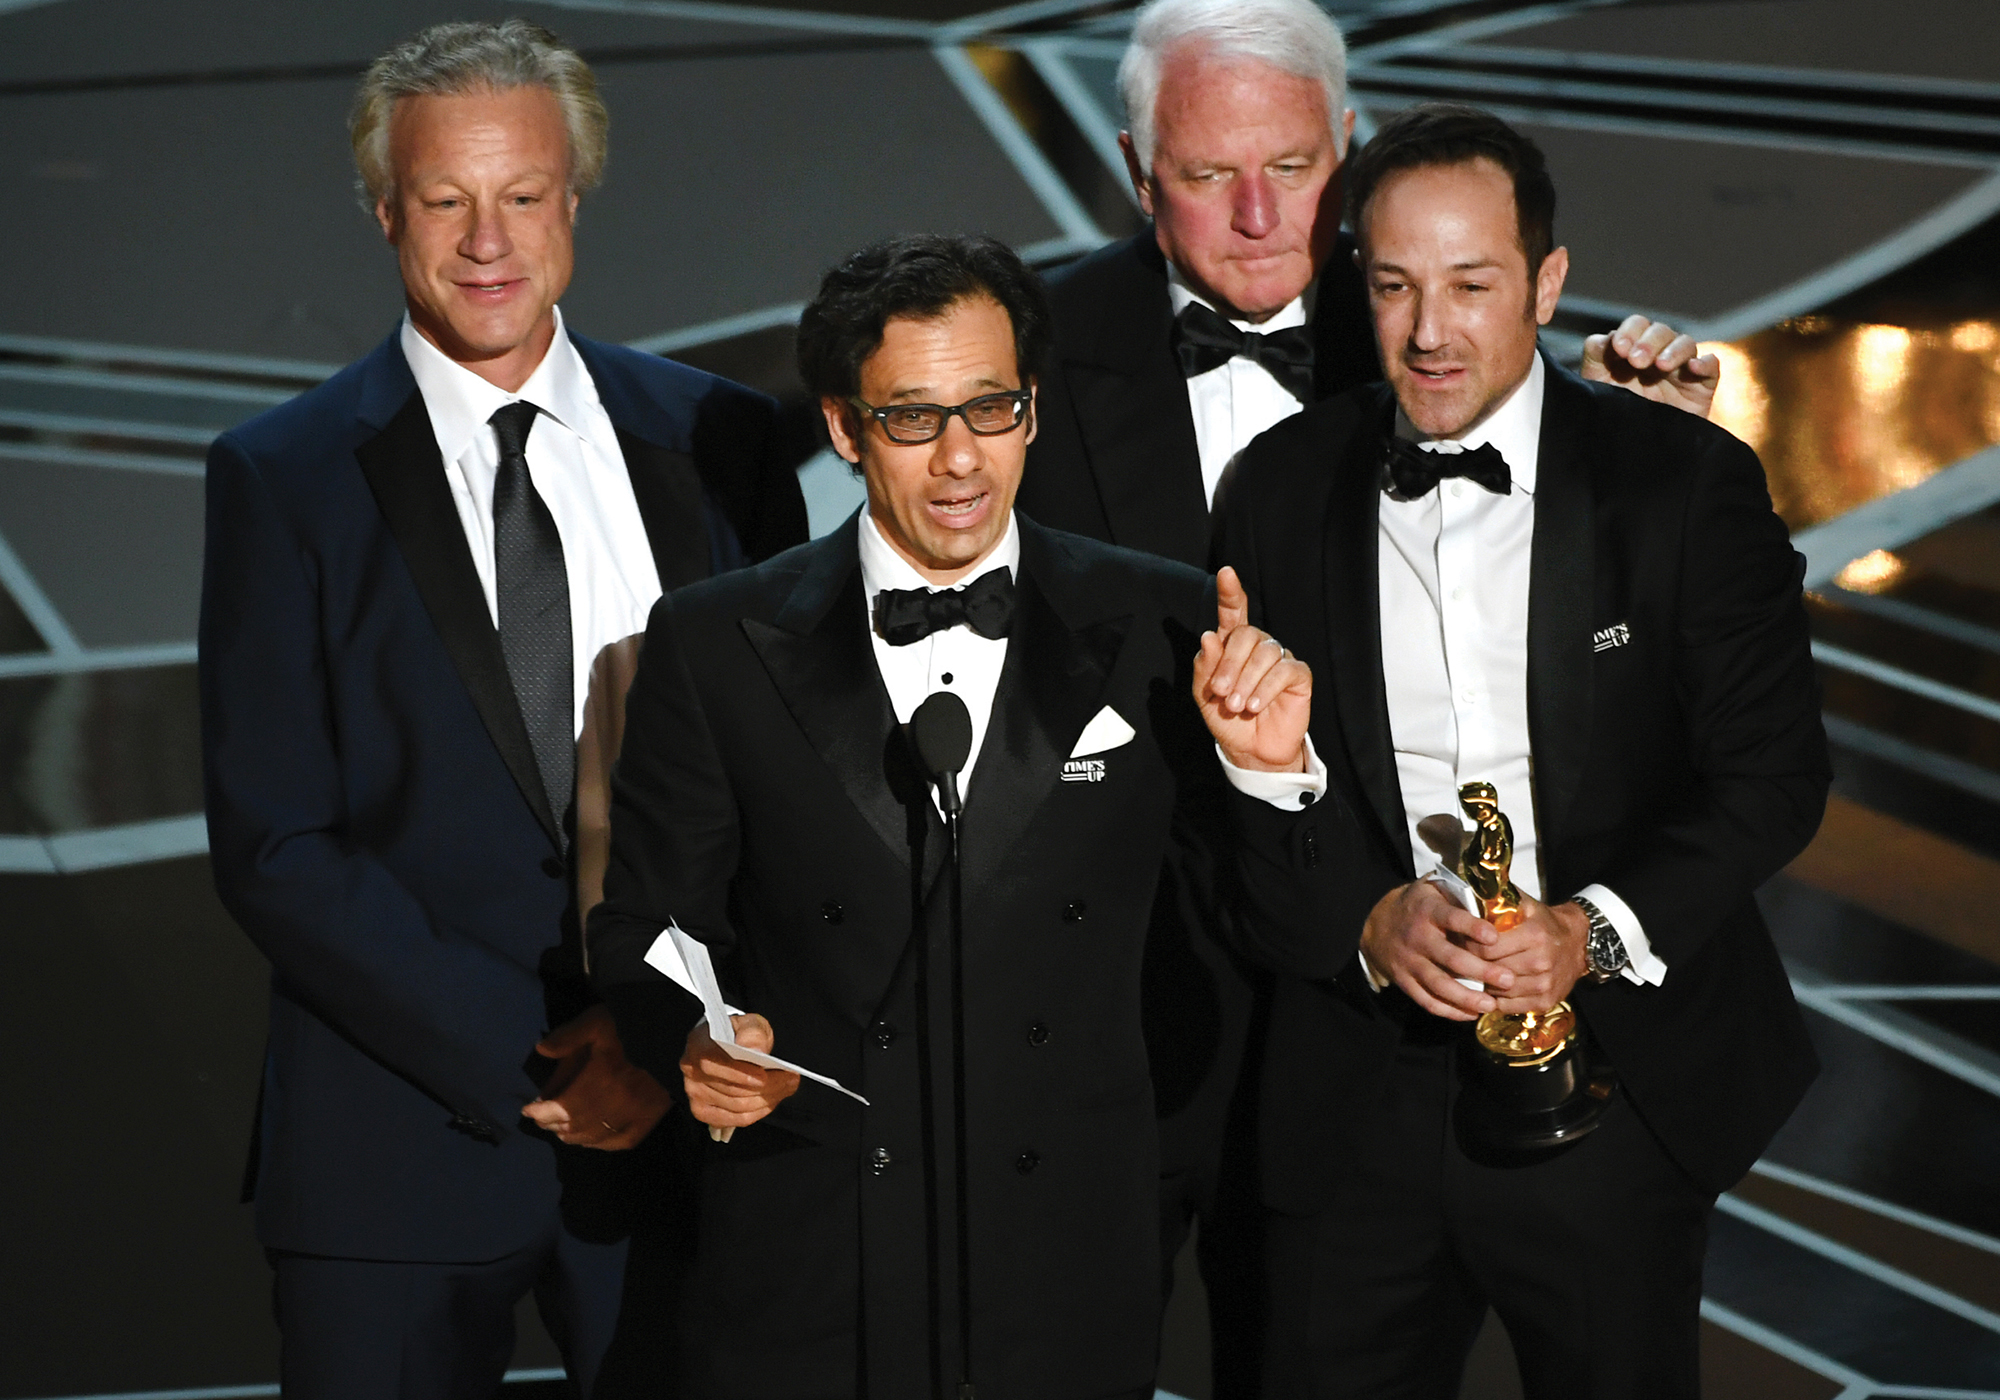 David Fialkow, director Dan Cogan, producer James R. Swartz, and director Bryan Fogel accept Best Documentary Feature for Icarusduring the 90th Annual Academy Awards. Credit: Kevin Winter/Getty Images